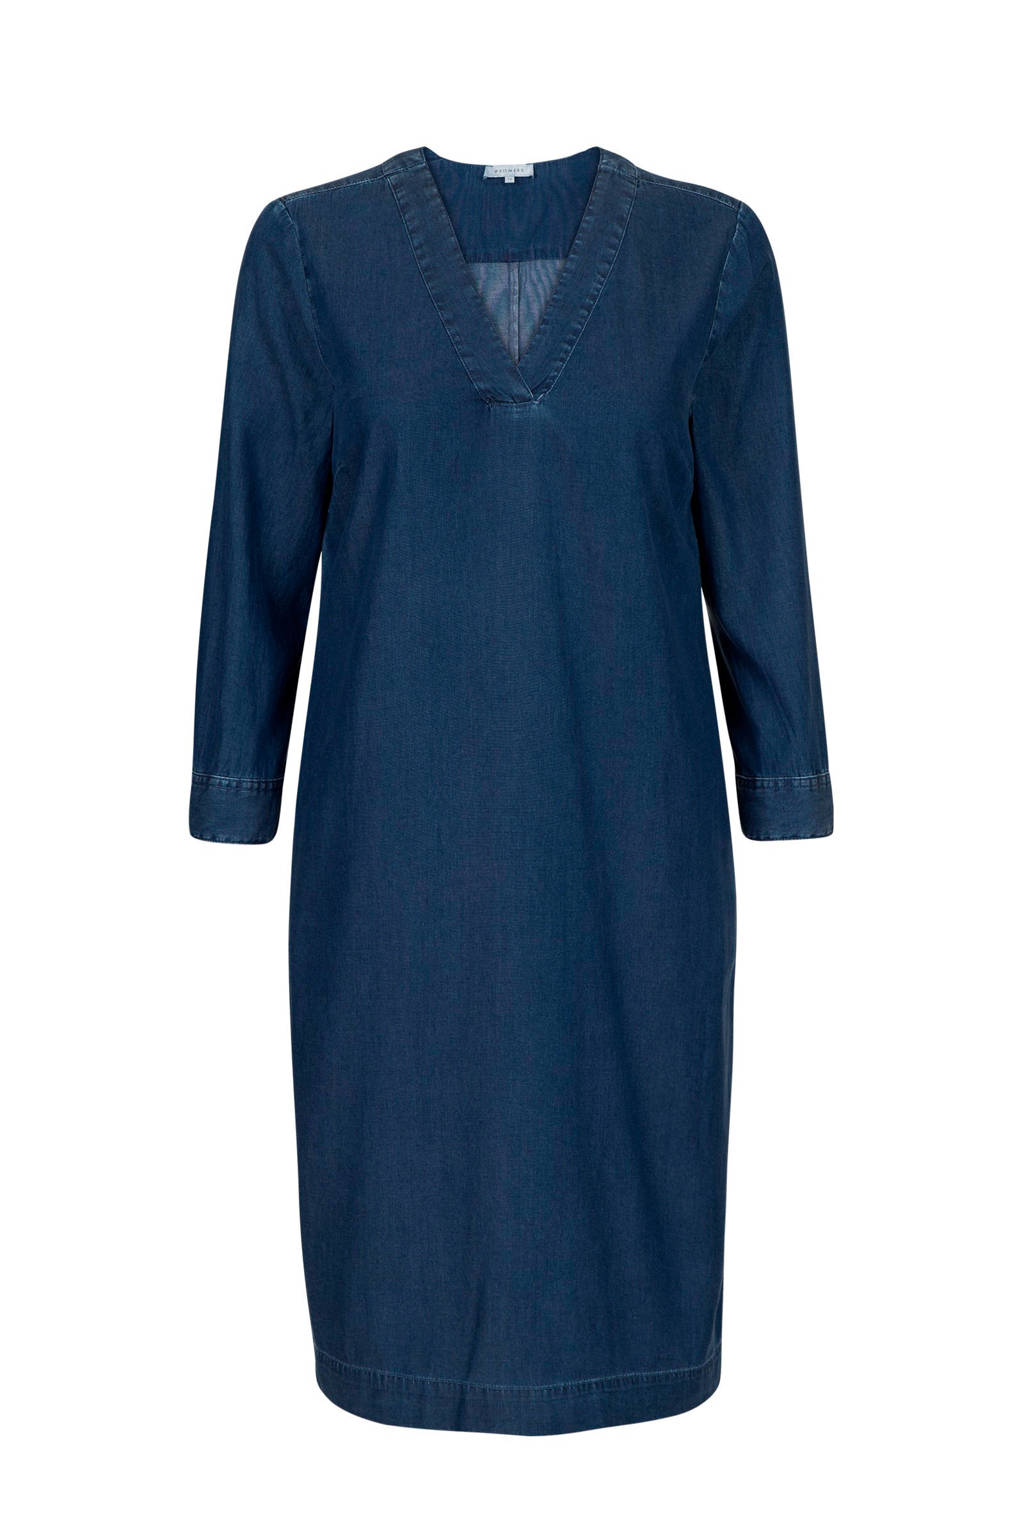 Promiss denim tuniek, Dark denim